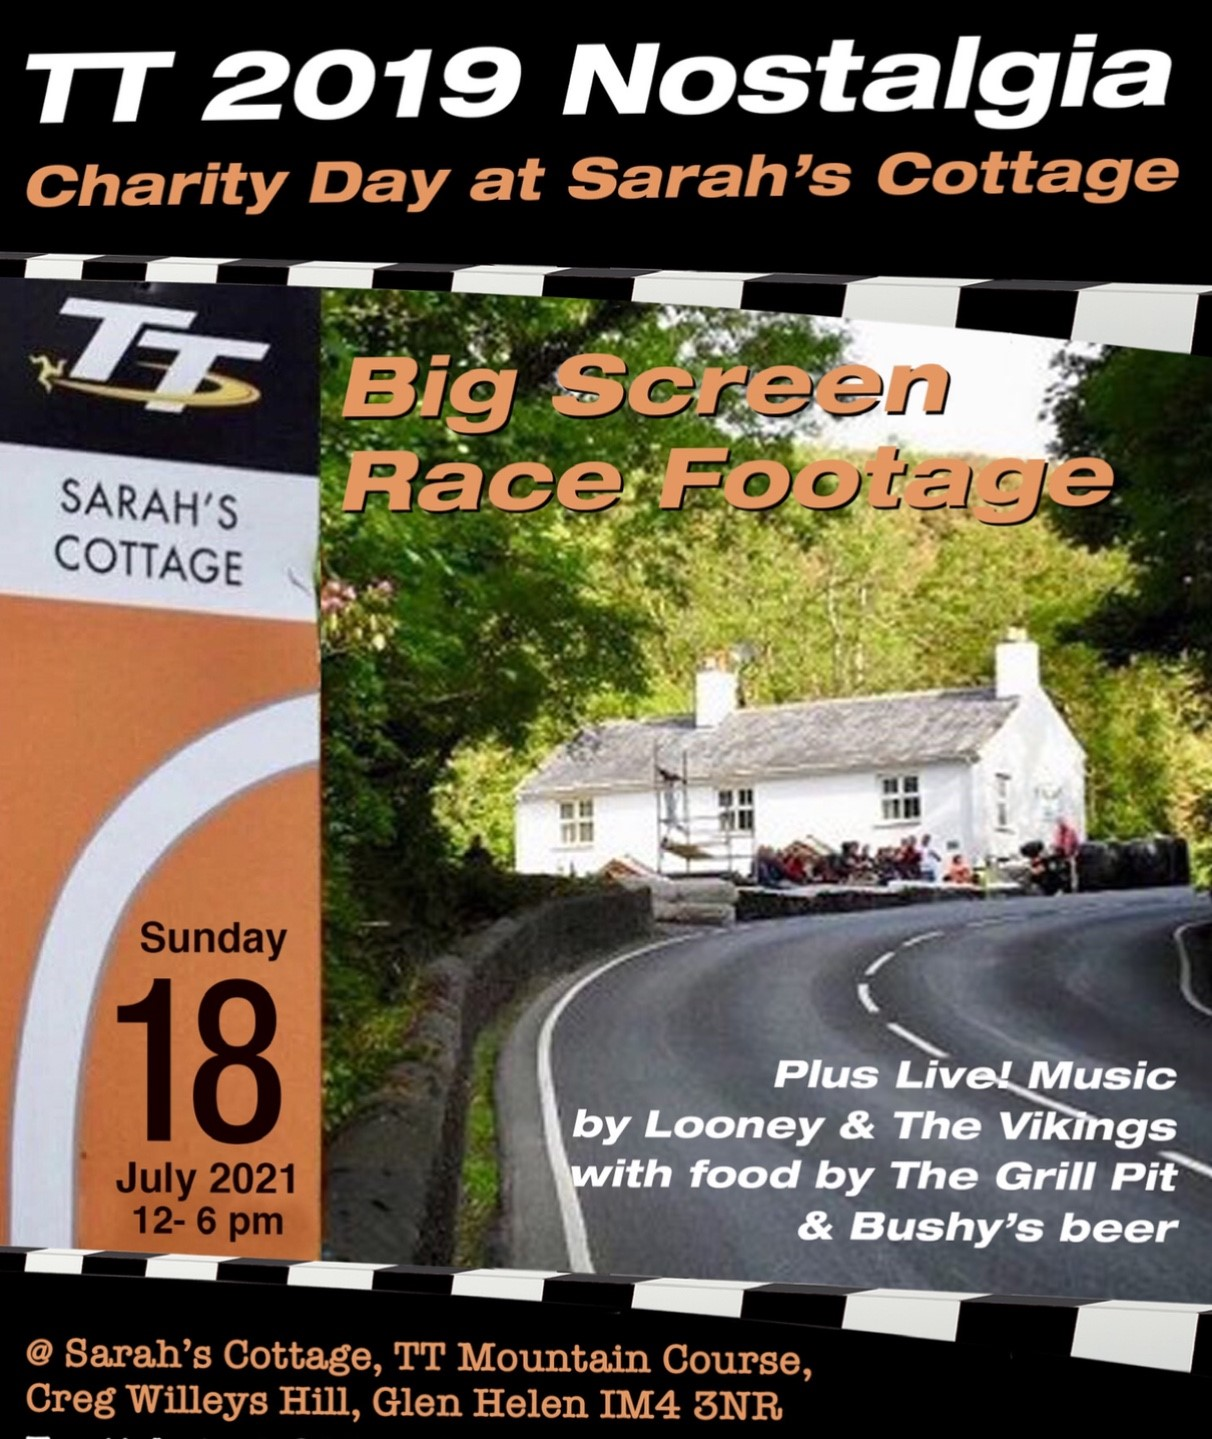 TT 2019 Nostalgia -  Charity Day at Sarah's Cottage - 18th July 2021 Big Screen Race Footage + Live! Music by Looney & The Vikings on Sep 05, 11:55@Sarah's Cottage, TT Mountain Course - Buy tickets and Get information on RS PROMOTIONS